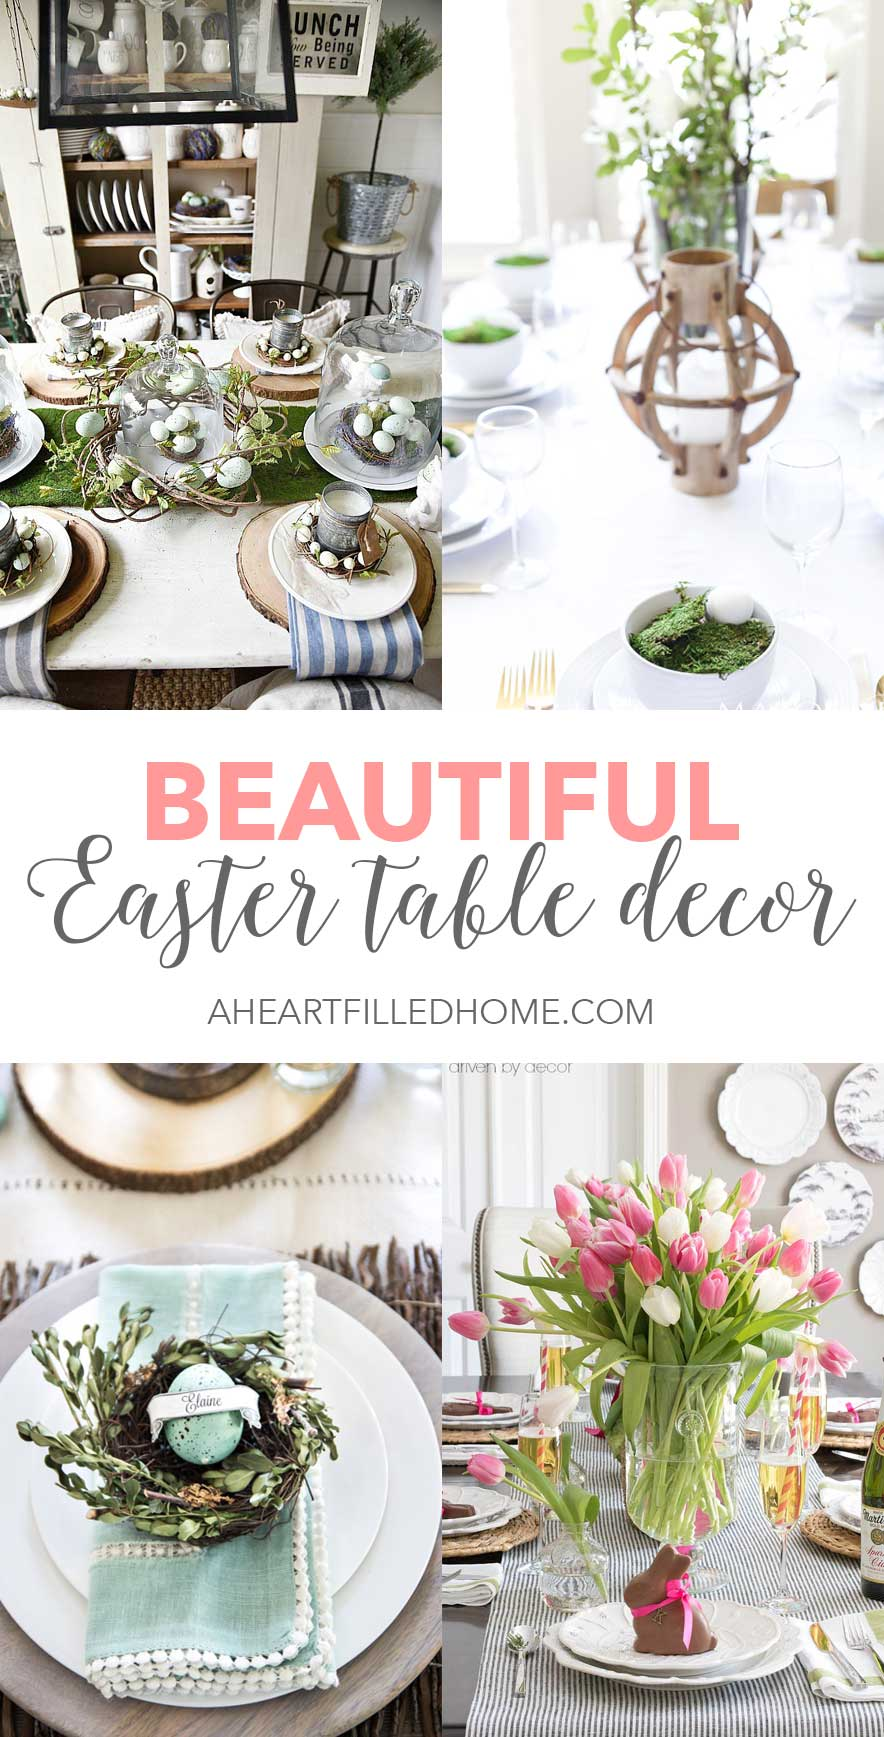 Easter Table Decor Ideas - Perfect for Easter!  sc 1 st  A Heart Filled Home & Beautiful Easter Table Decor - A Heart Filled Home | DIY Home ...